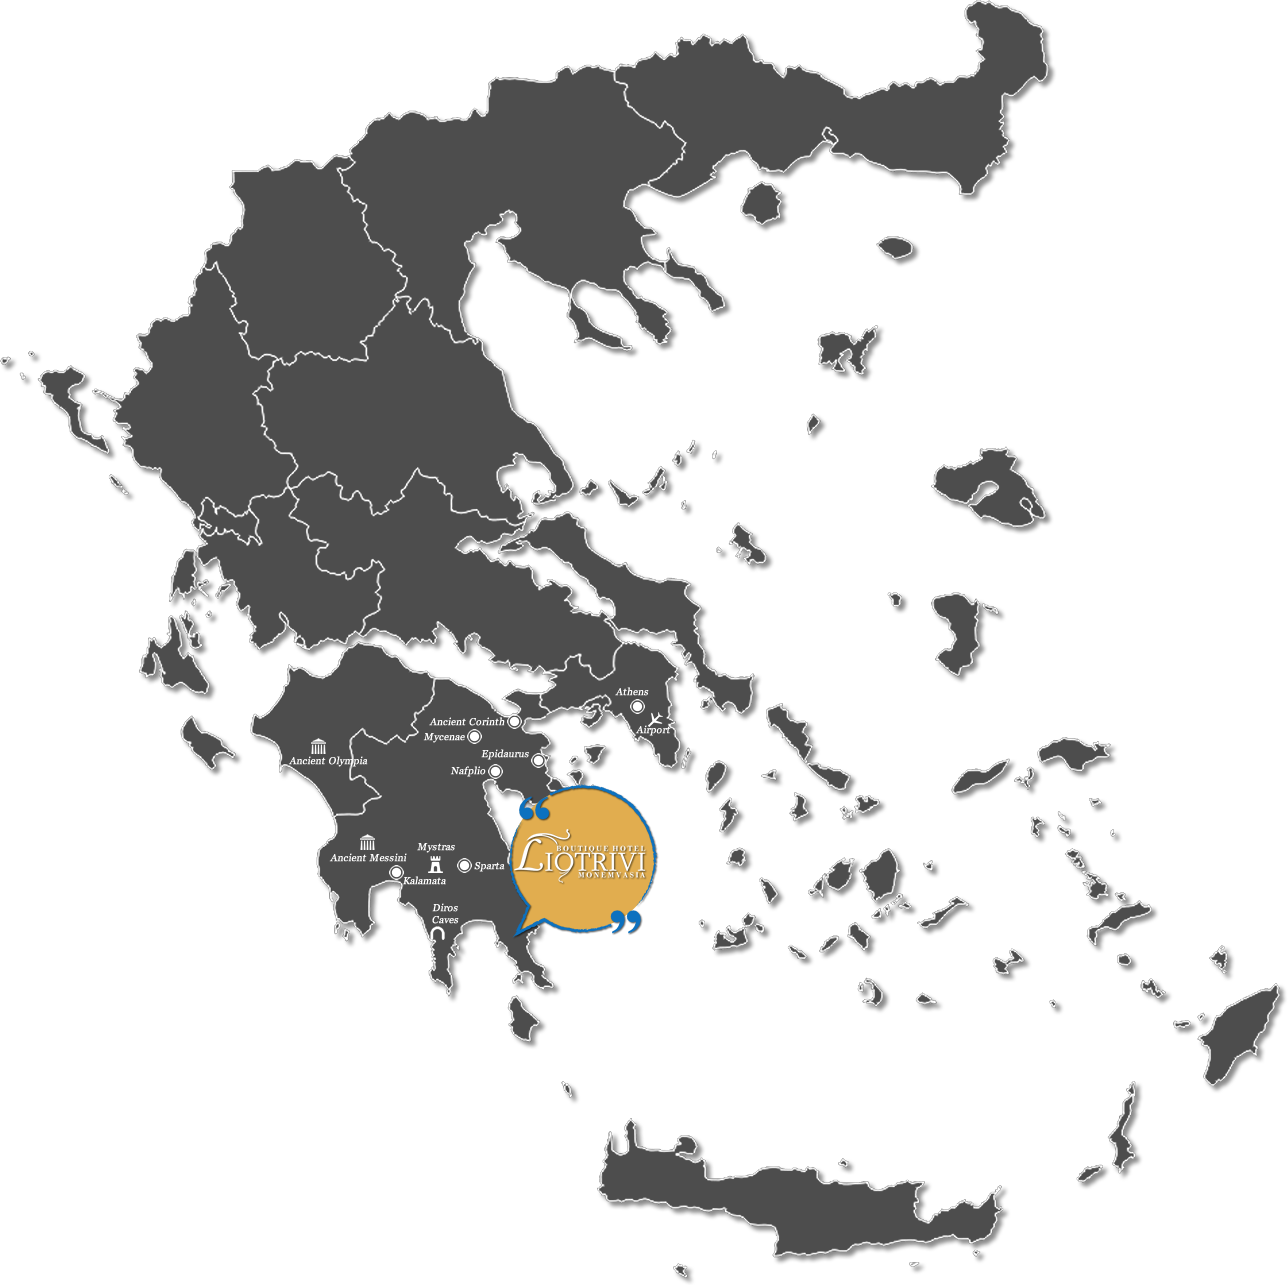 Liotrivi Boutique Hotel Monemvasia (Greece - Peloponnese Map)